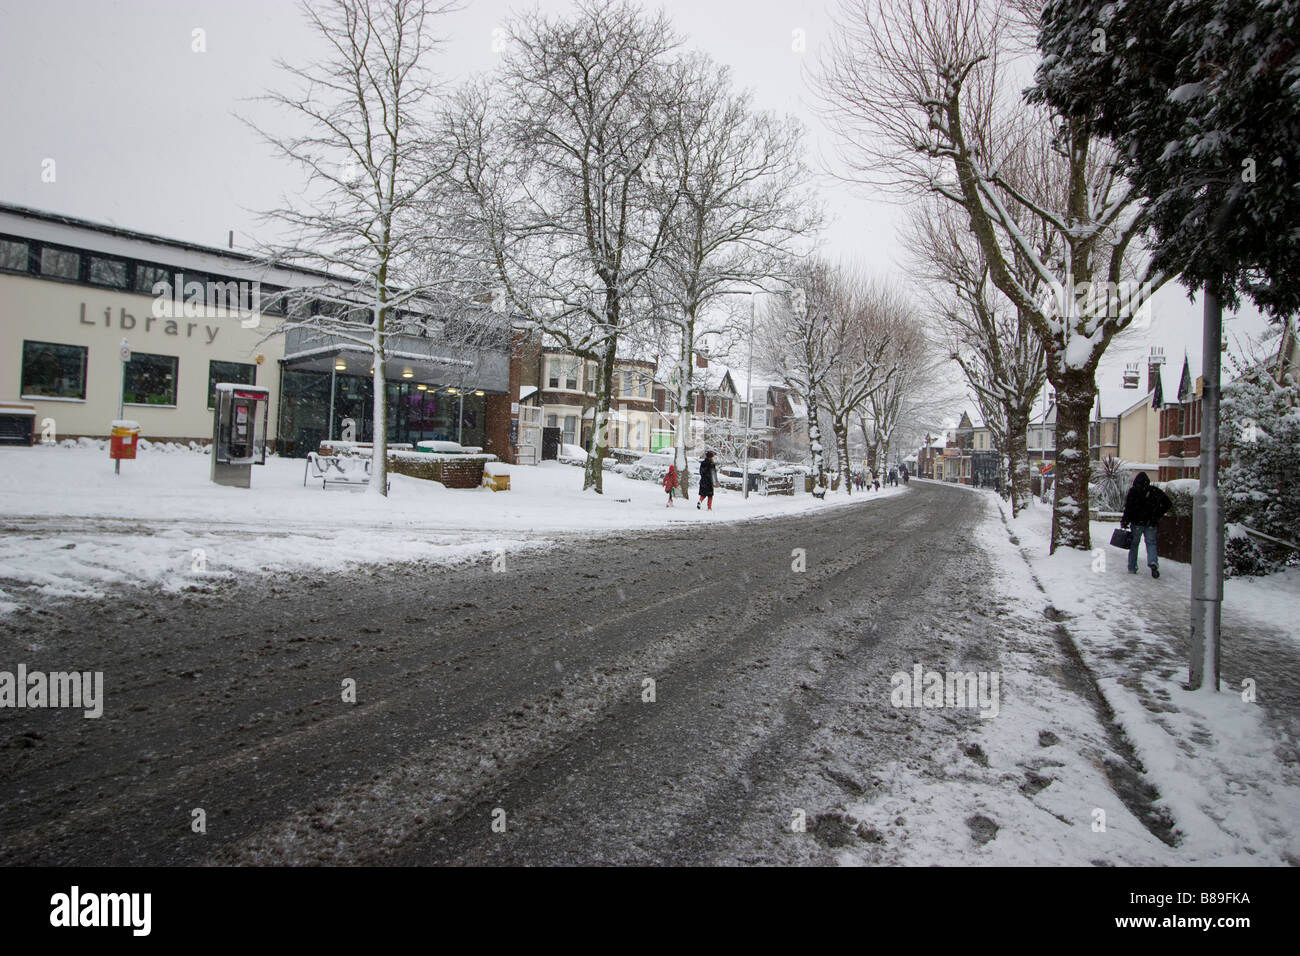 library Highams Park with snow and slush in road - Stock Image